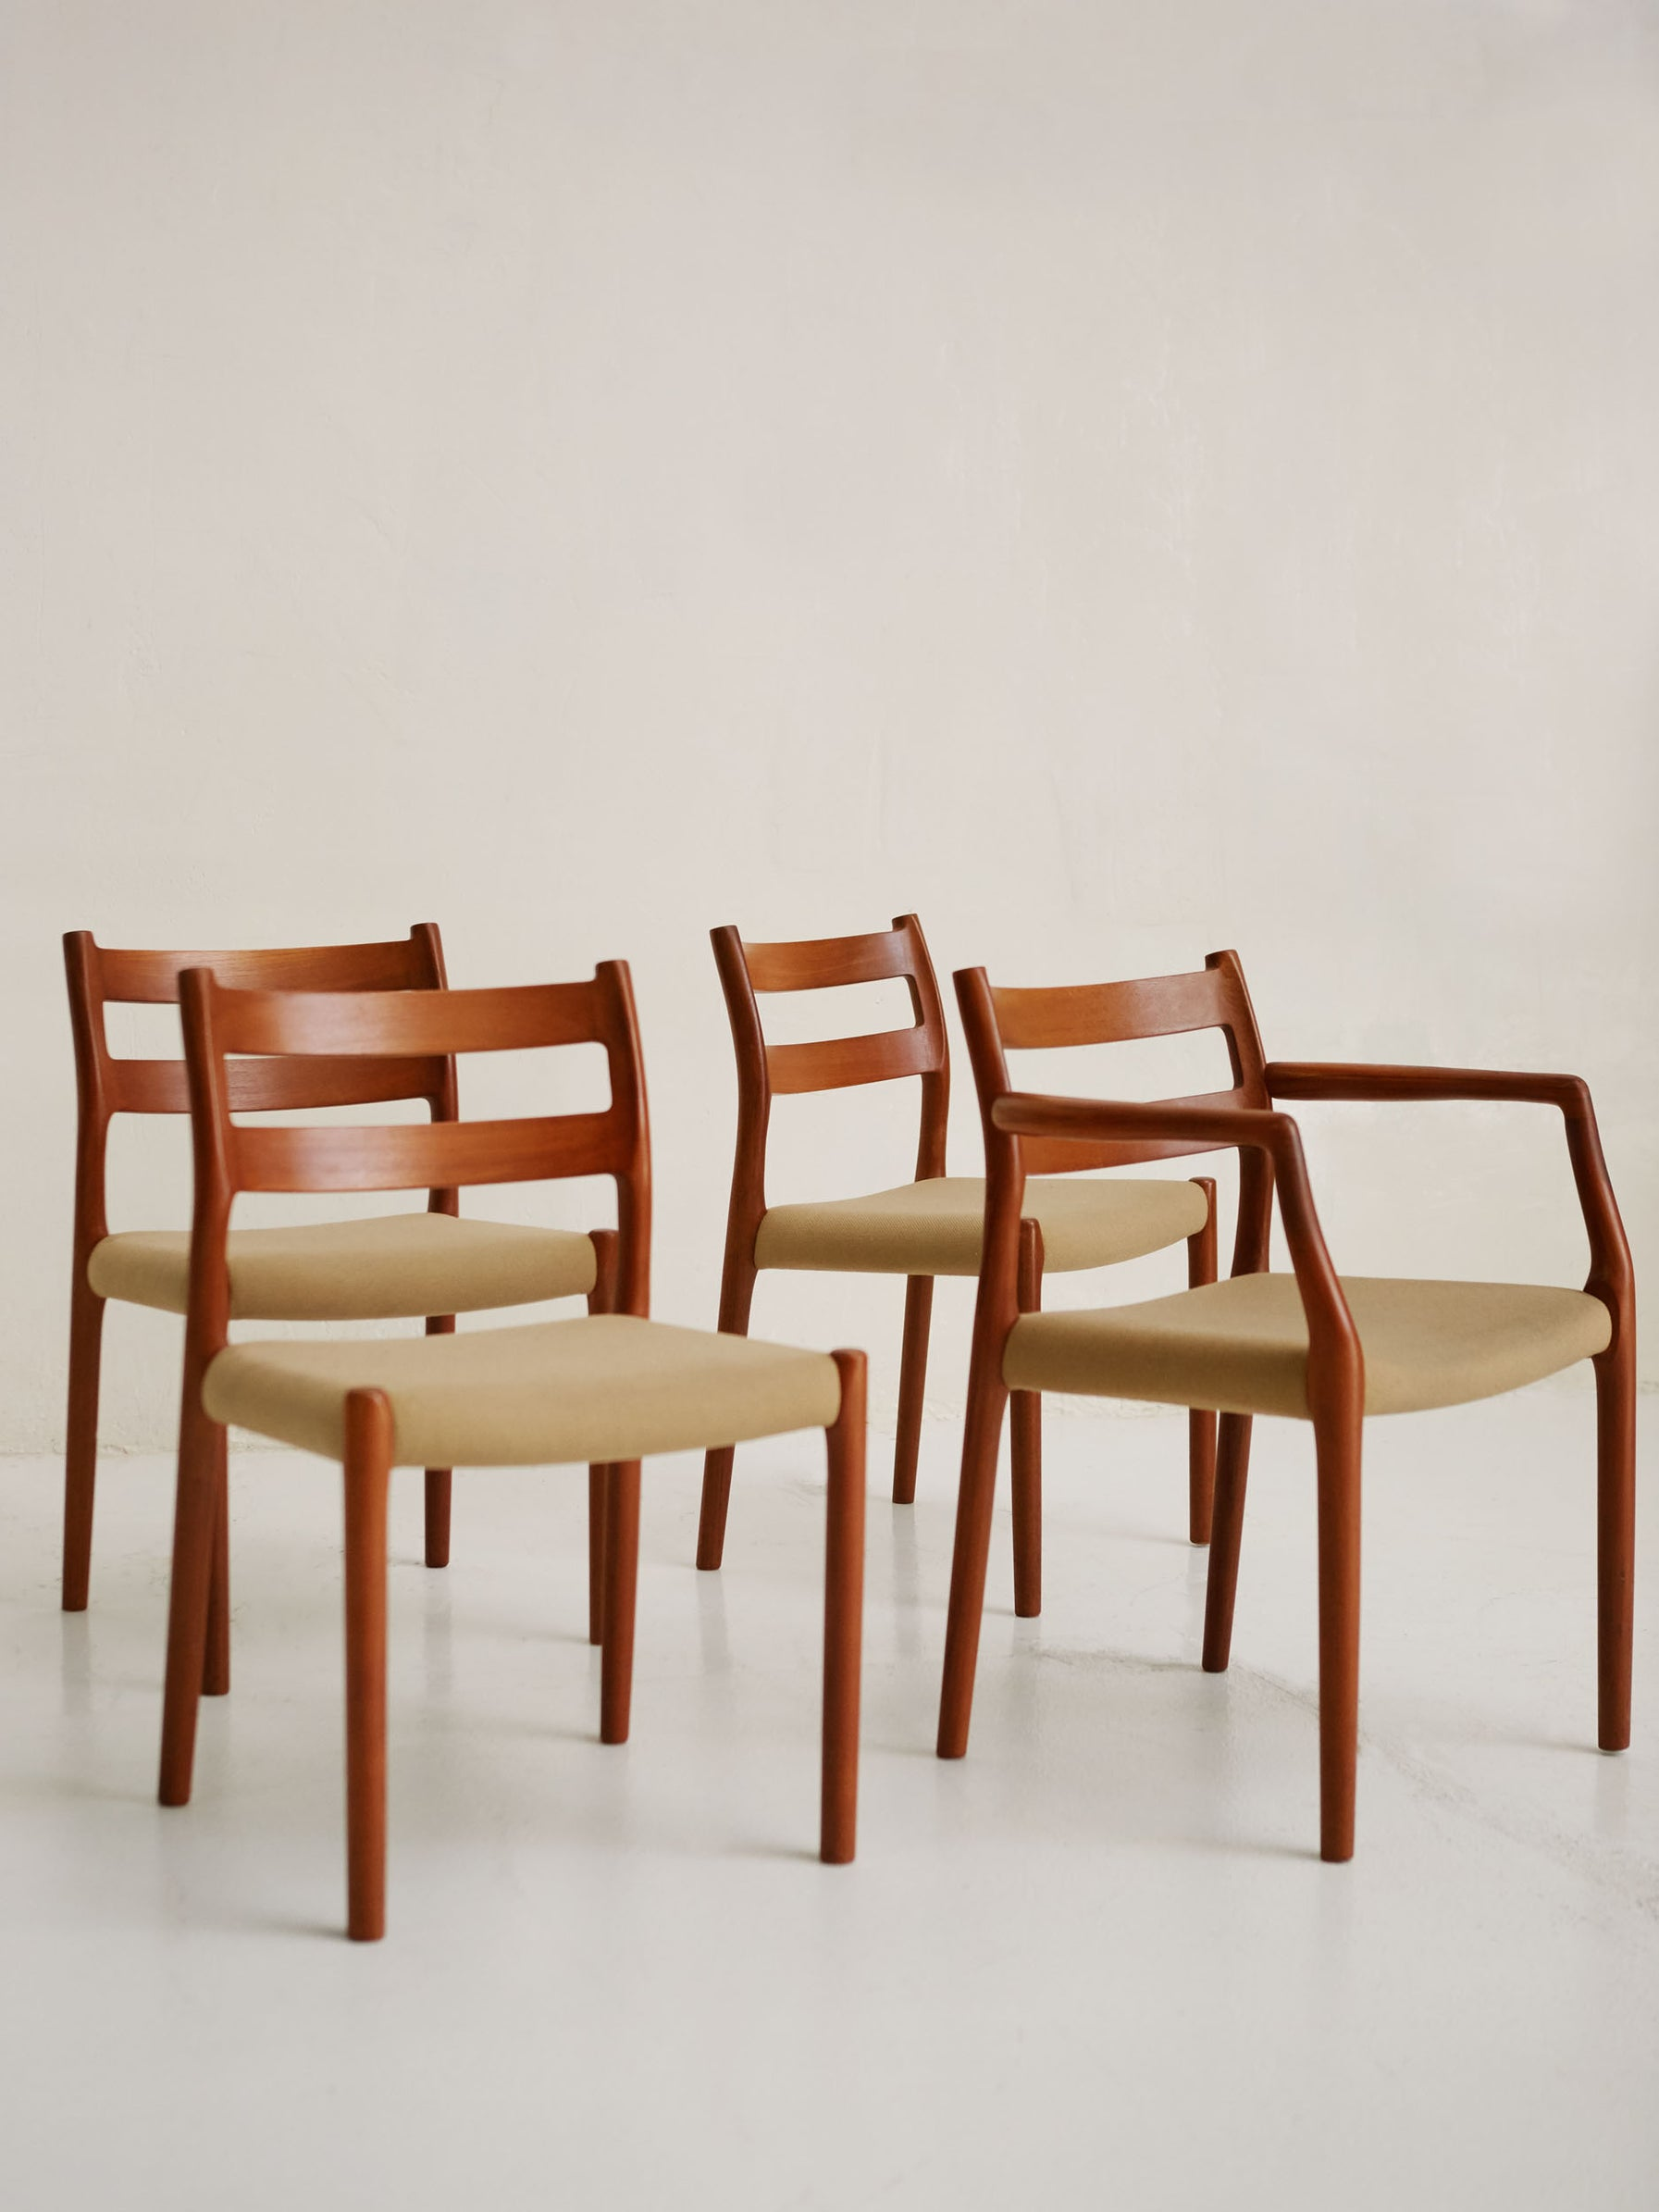 Dinning set of N° 84 Chairs by Niels O. Møller